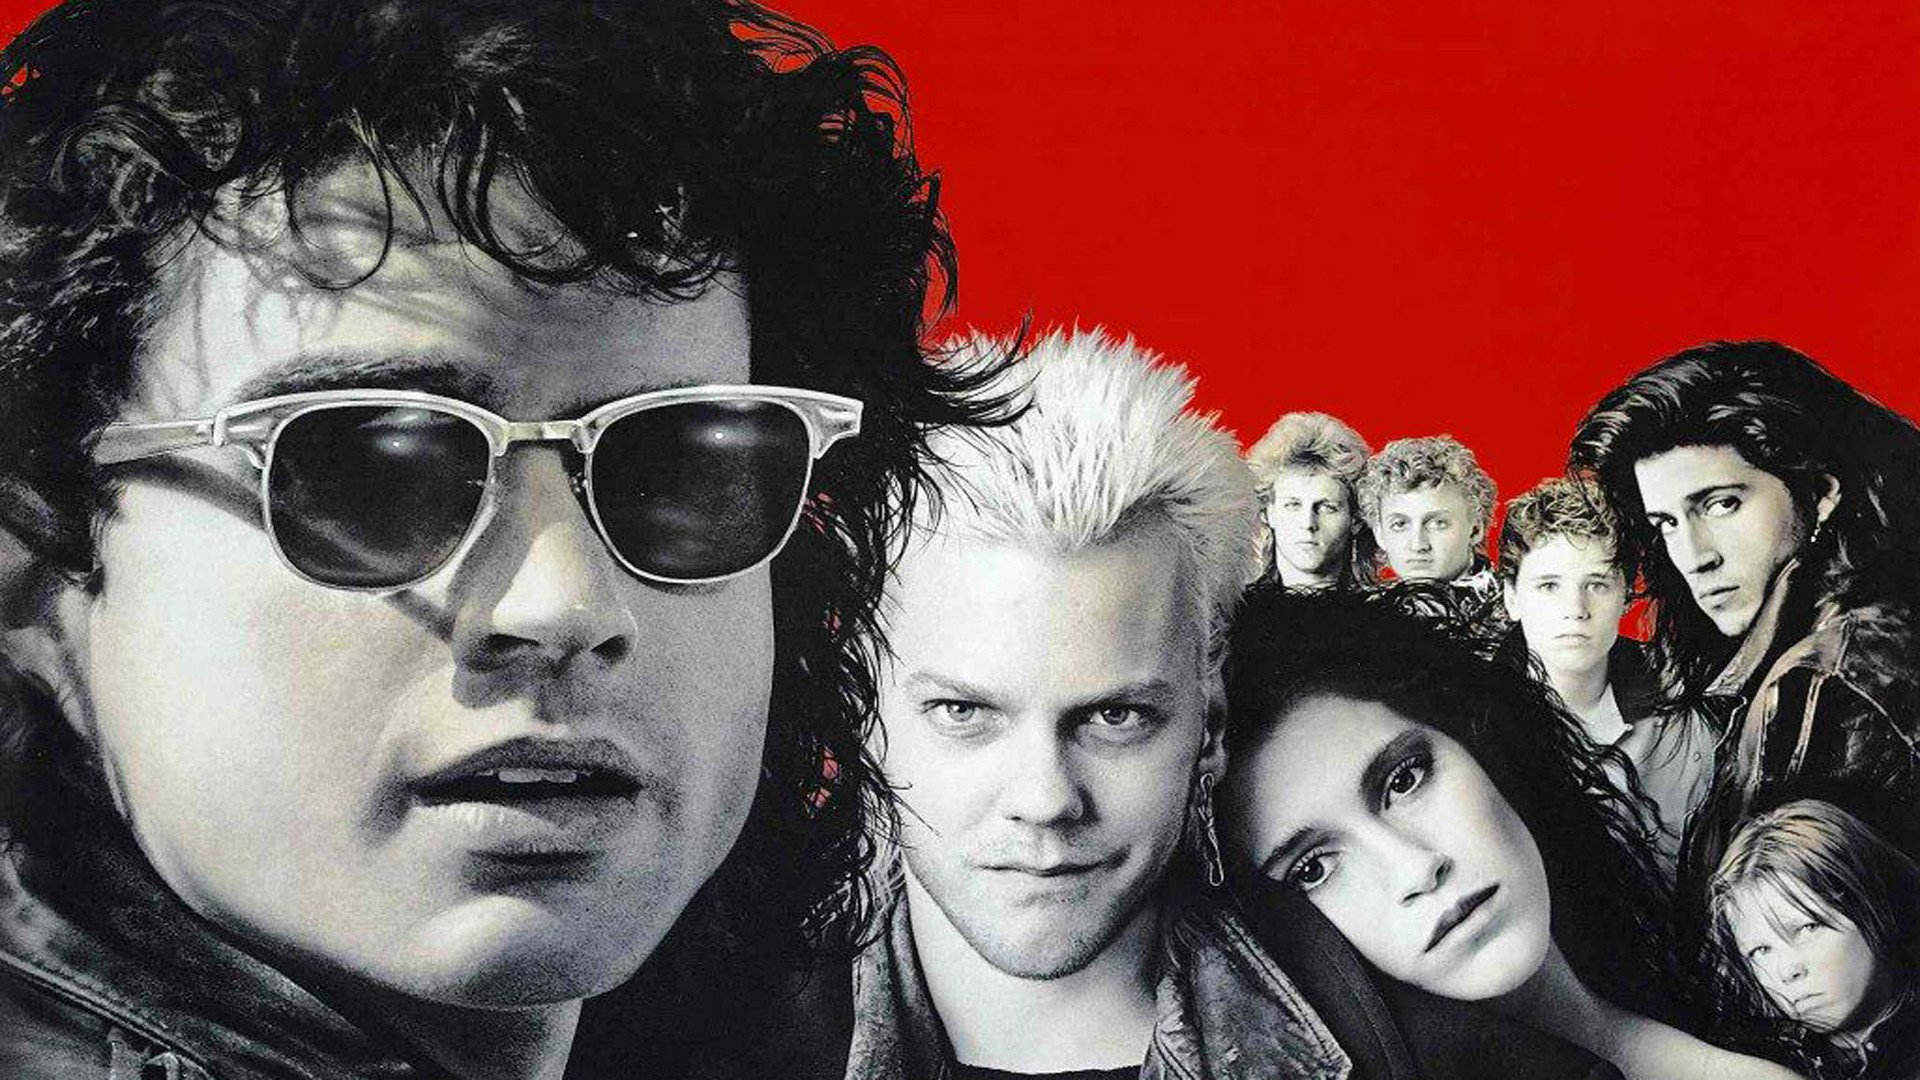 The Lost Boys Is Being Remade As A TV Show Sick Chirpse 1920x1080